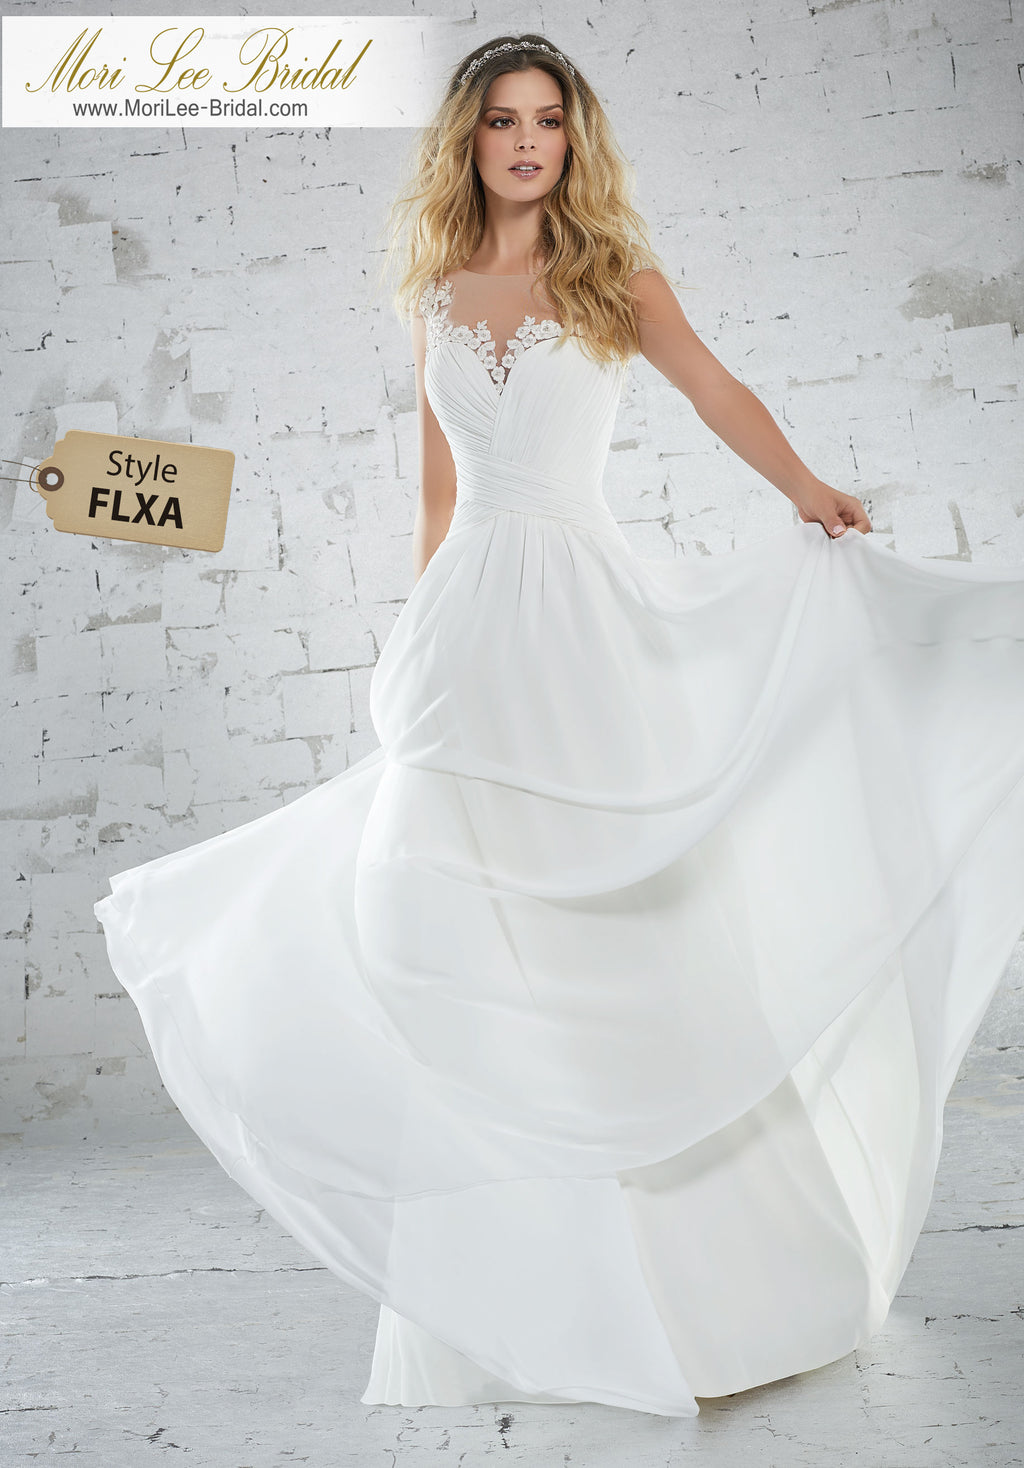 FLXA - Mori Lee Bridal